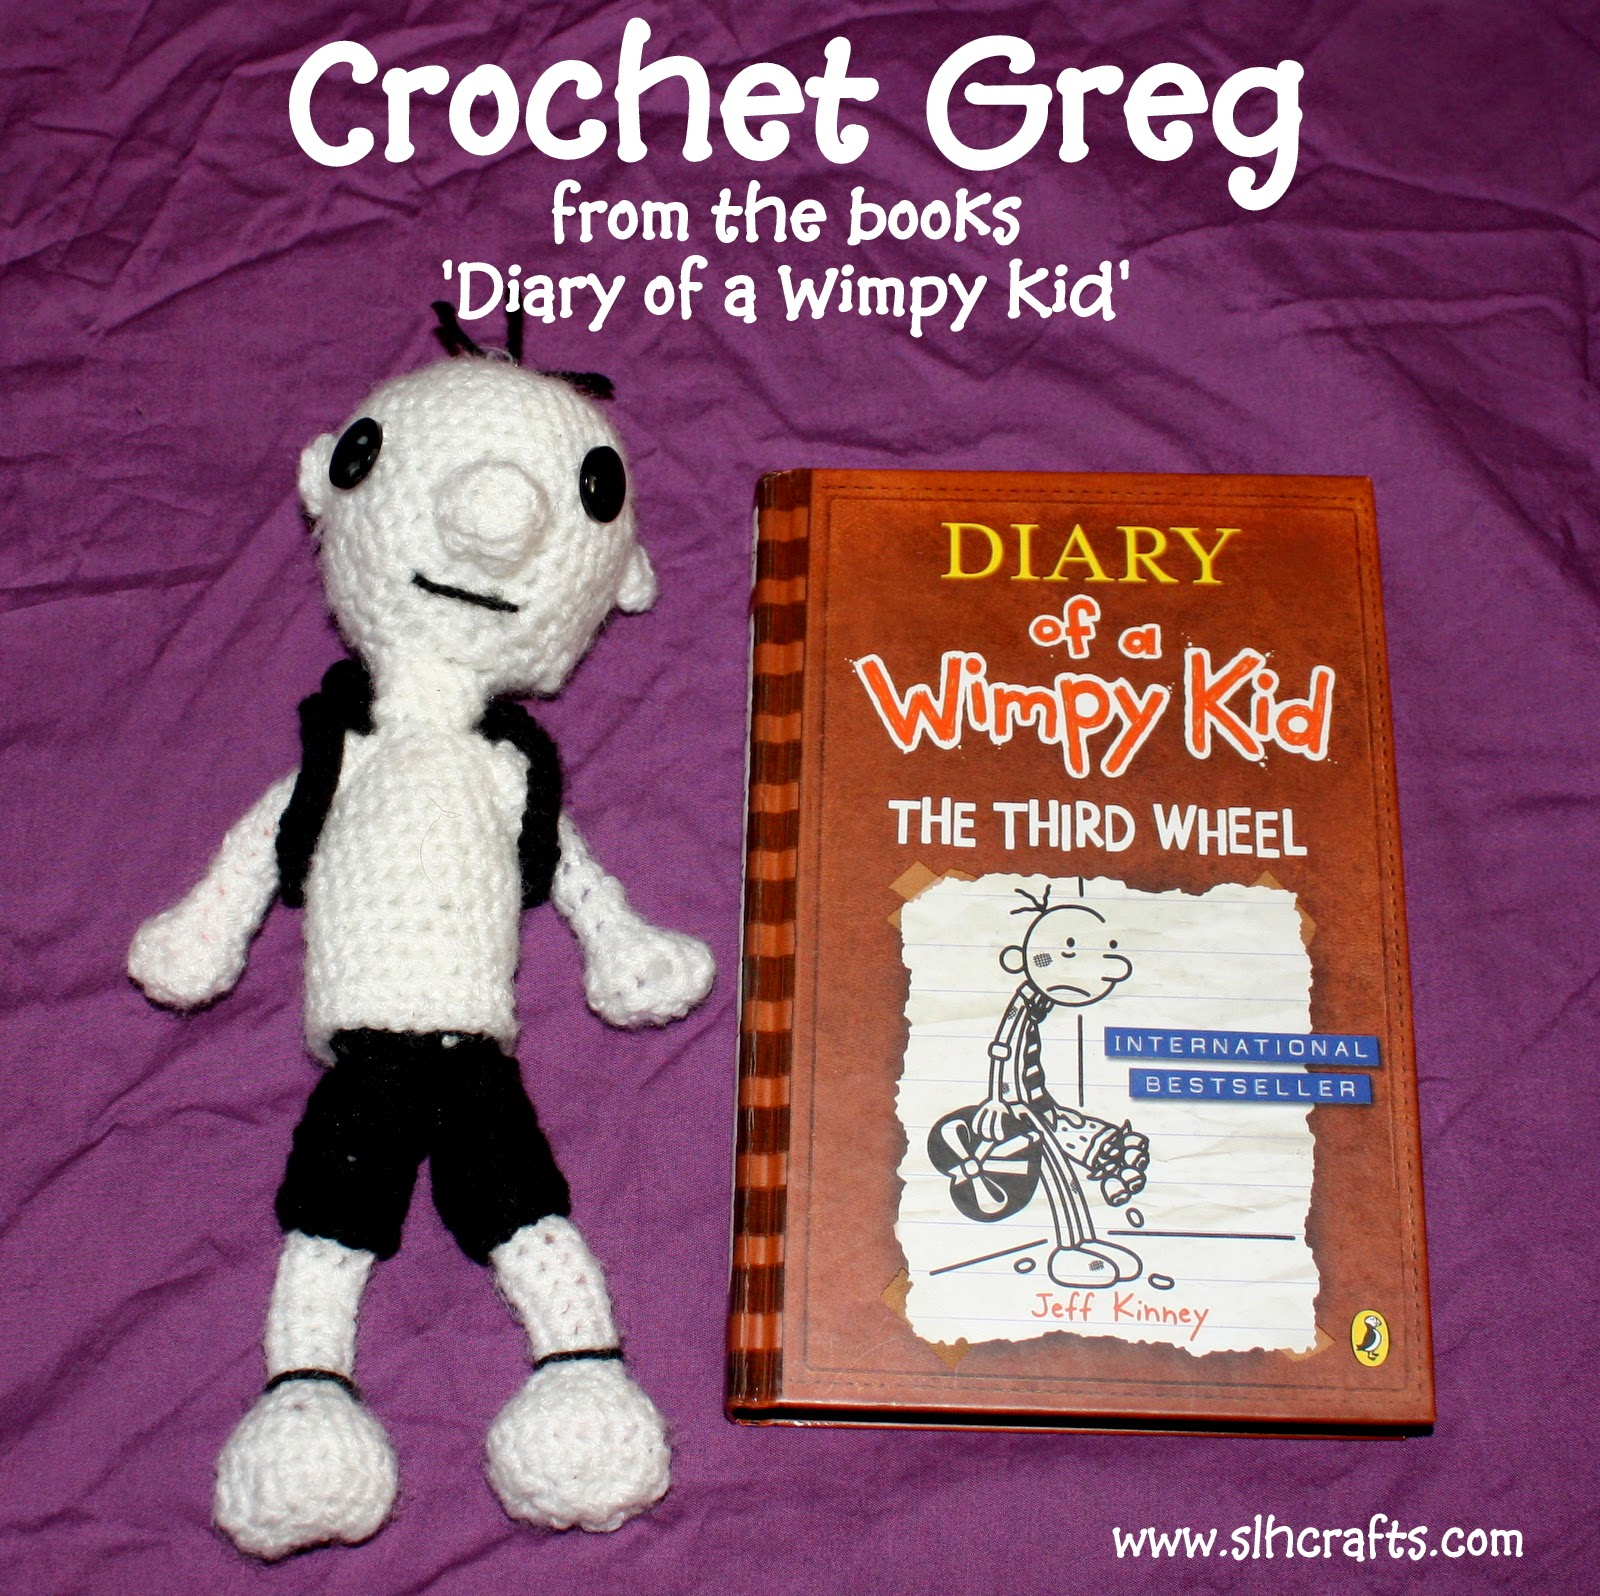 crochet greg diary of a wimpy kid